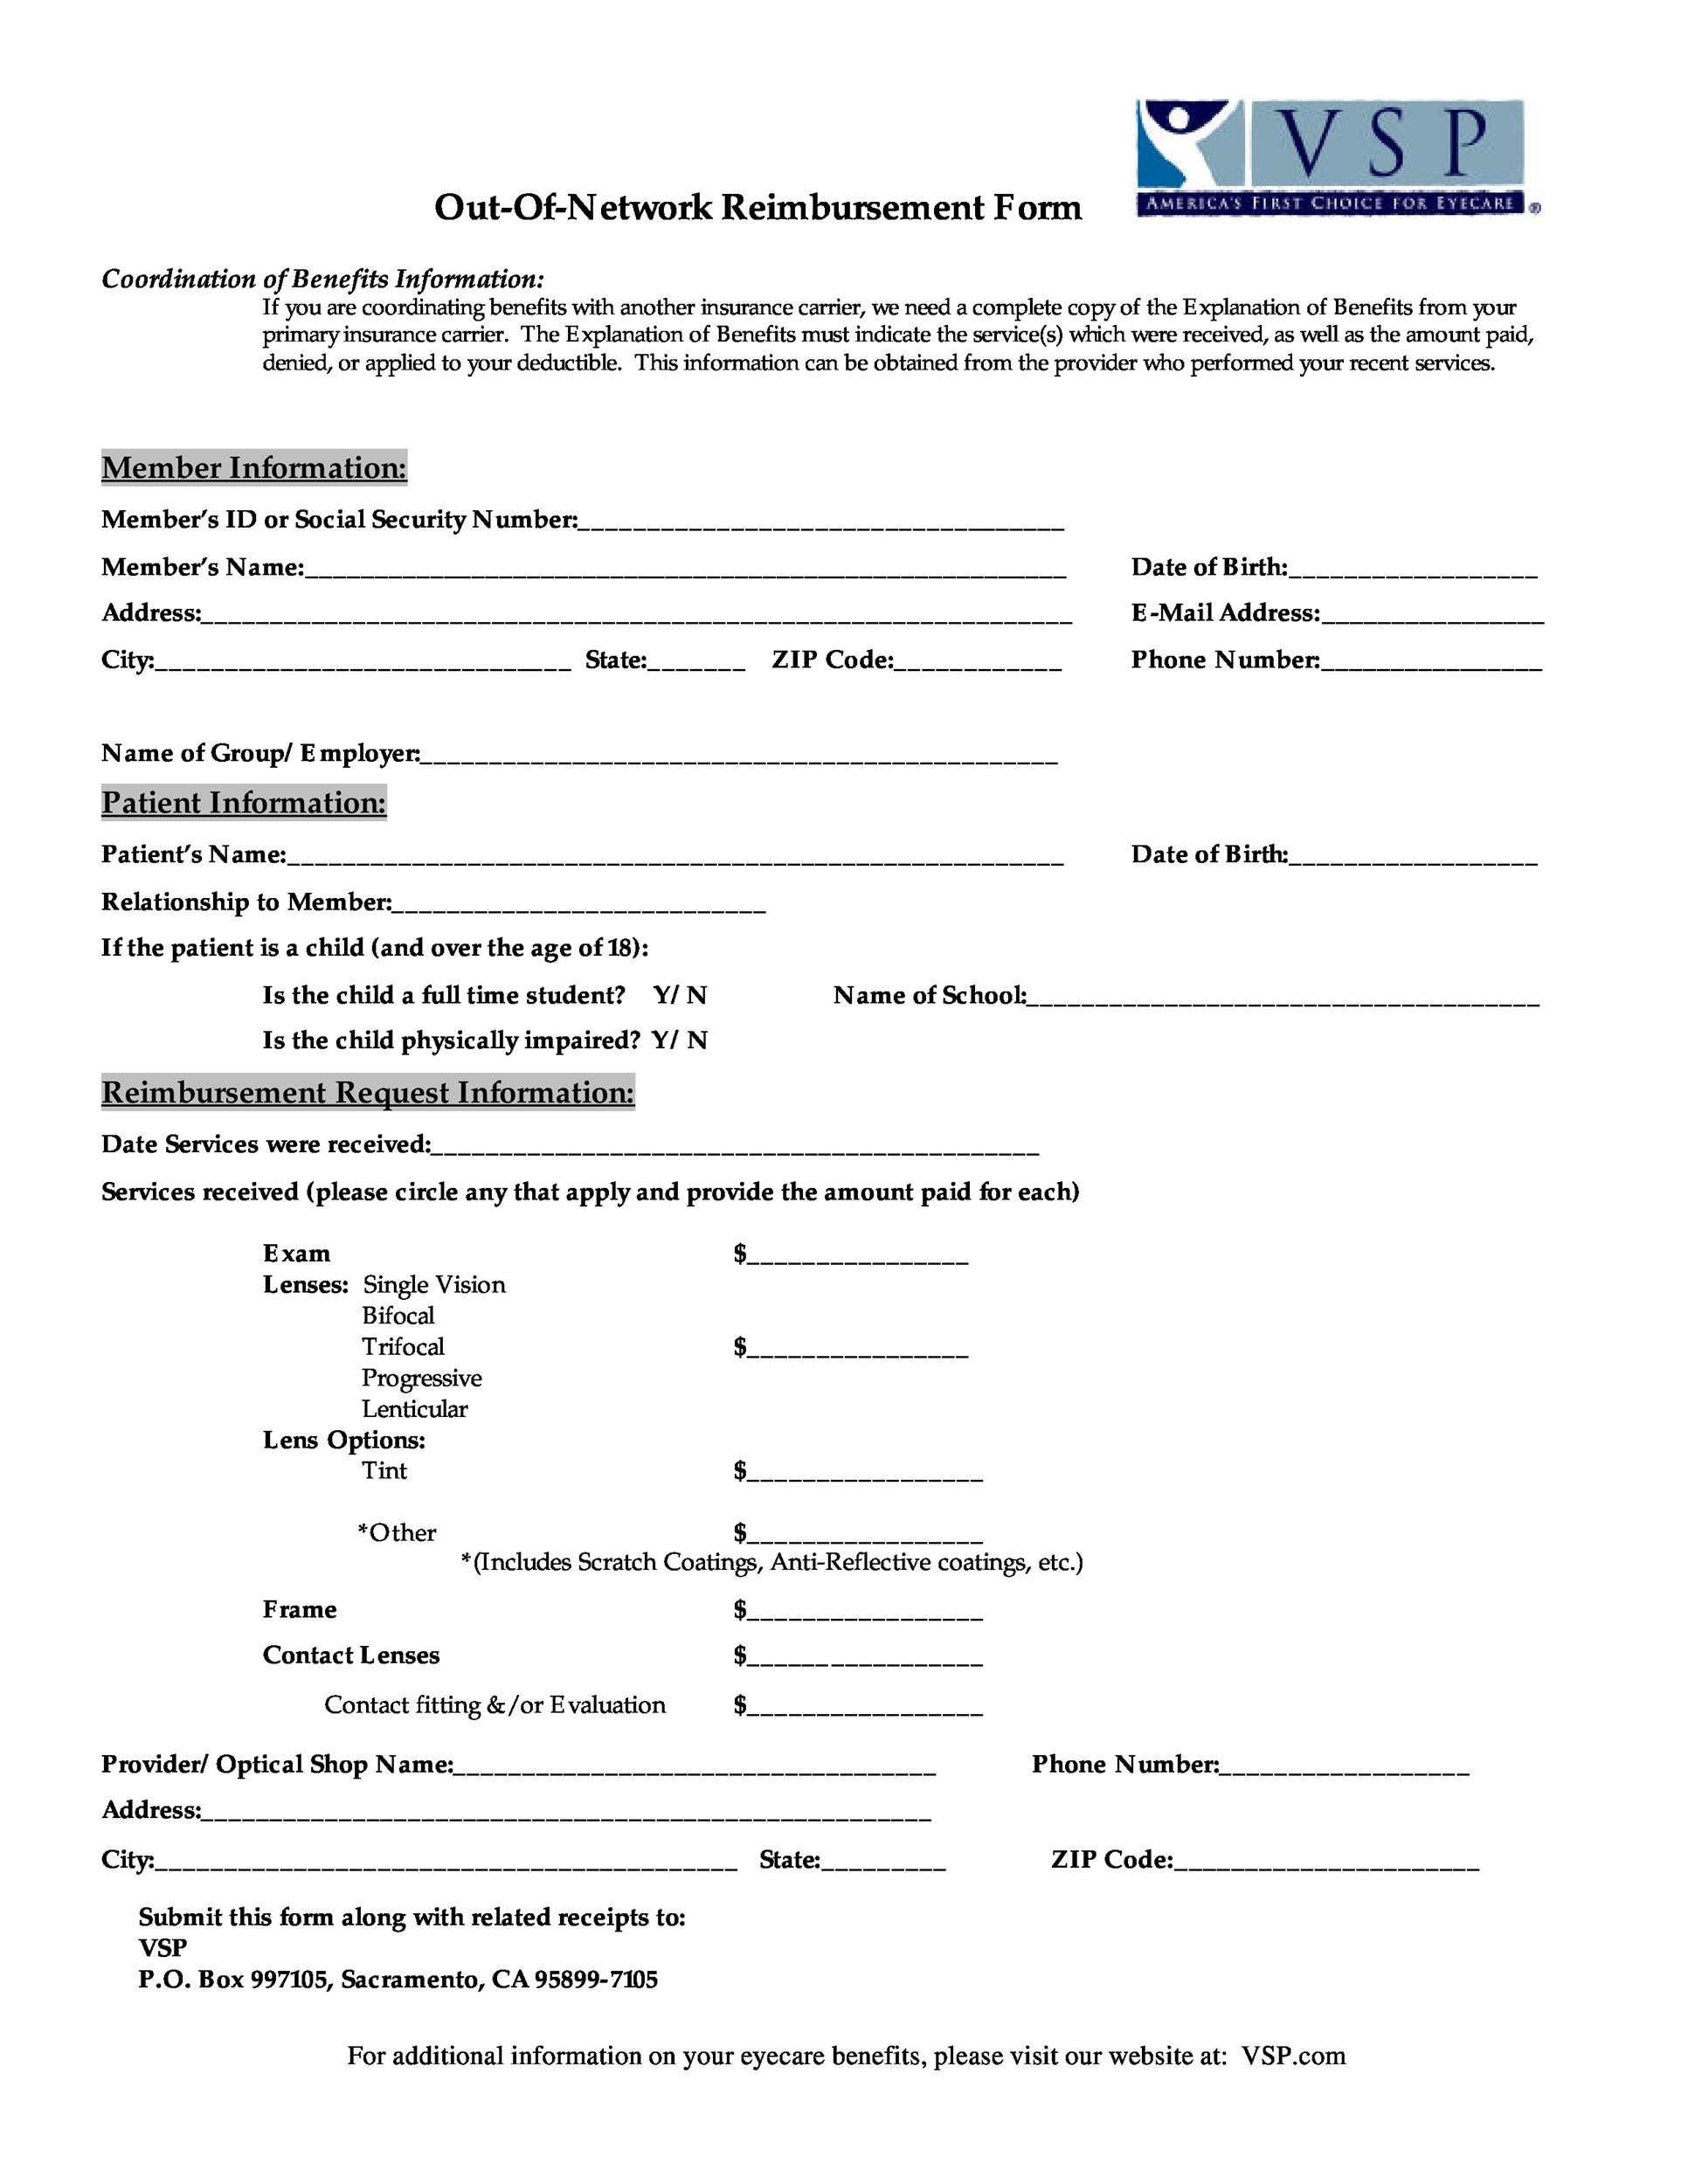 Free reimbursement form 46